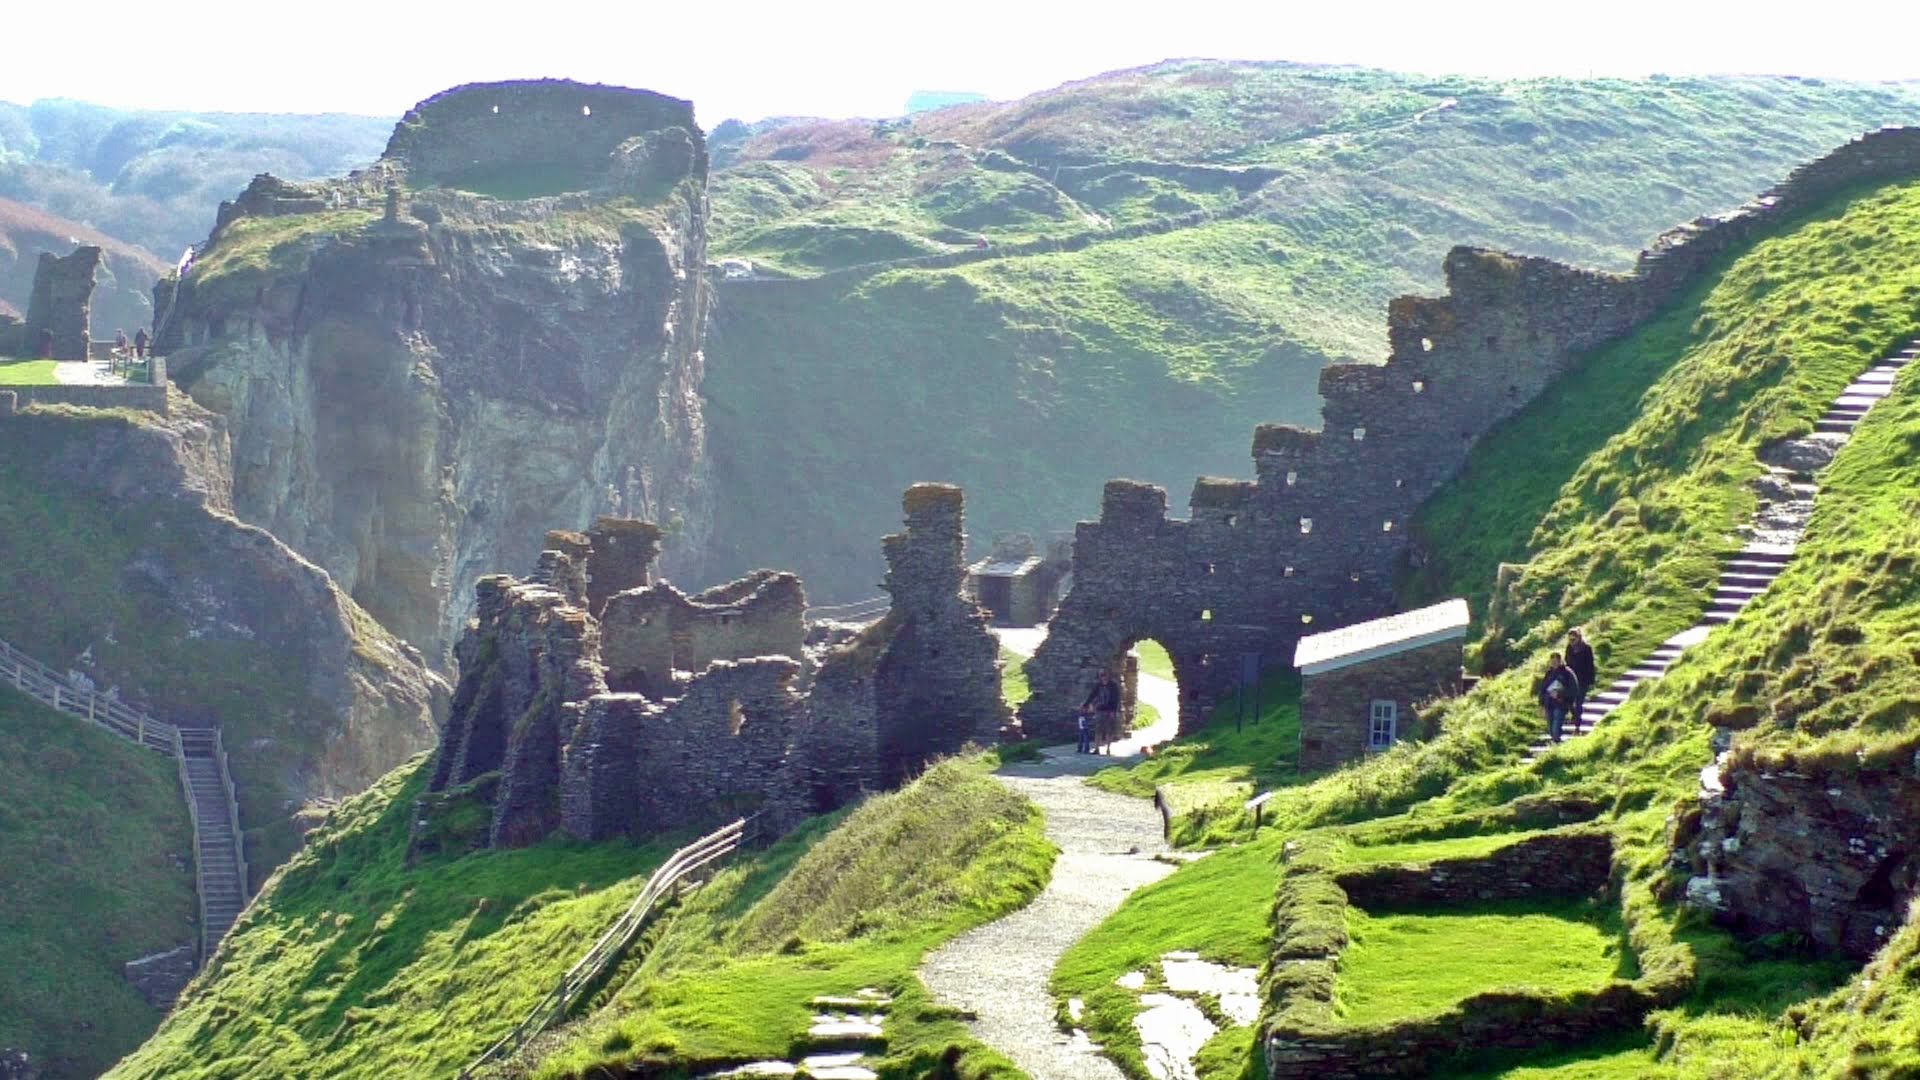 Tintagel Castle Tintagel, Tintagel Castle in Cornwall - The Land of King Arthur - YouTube